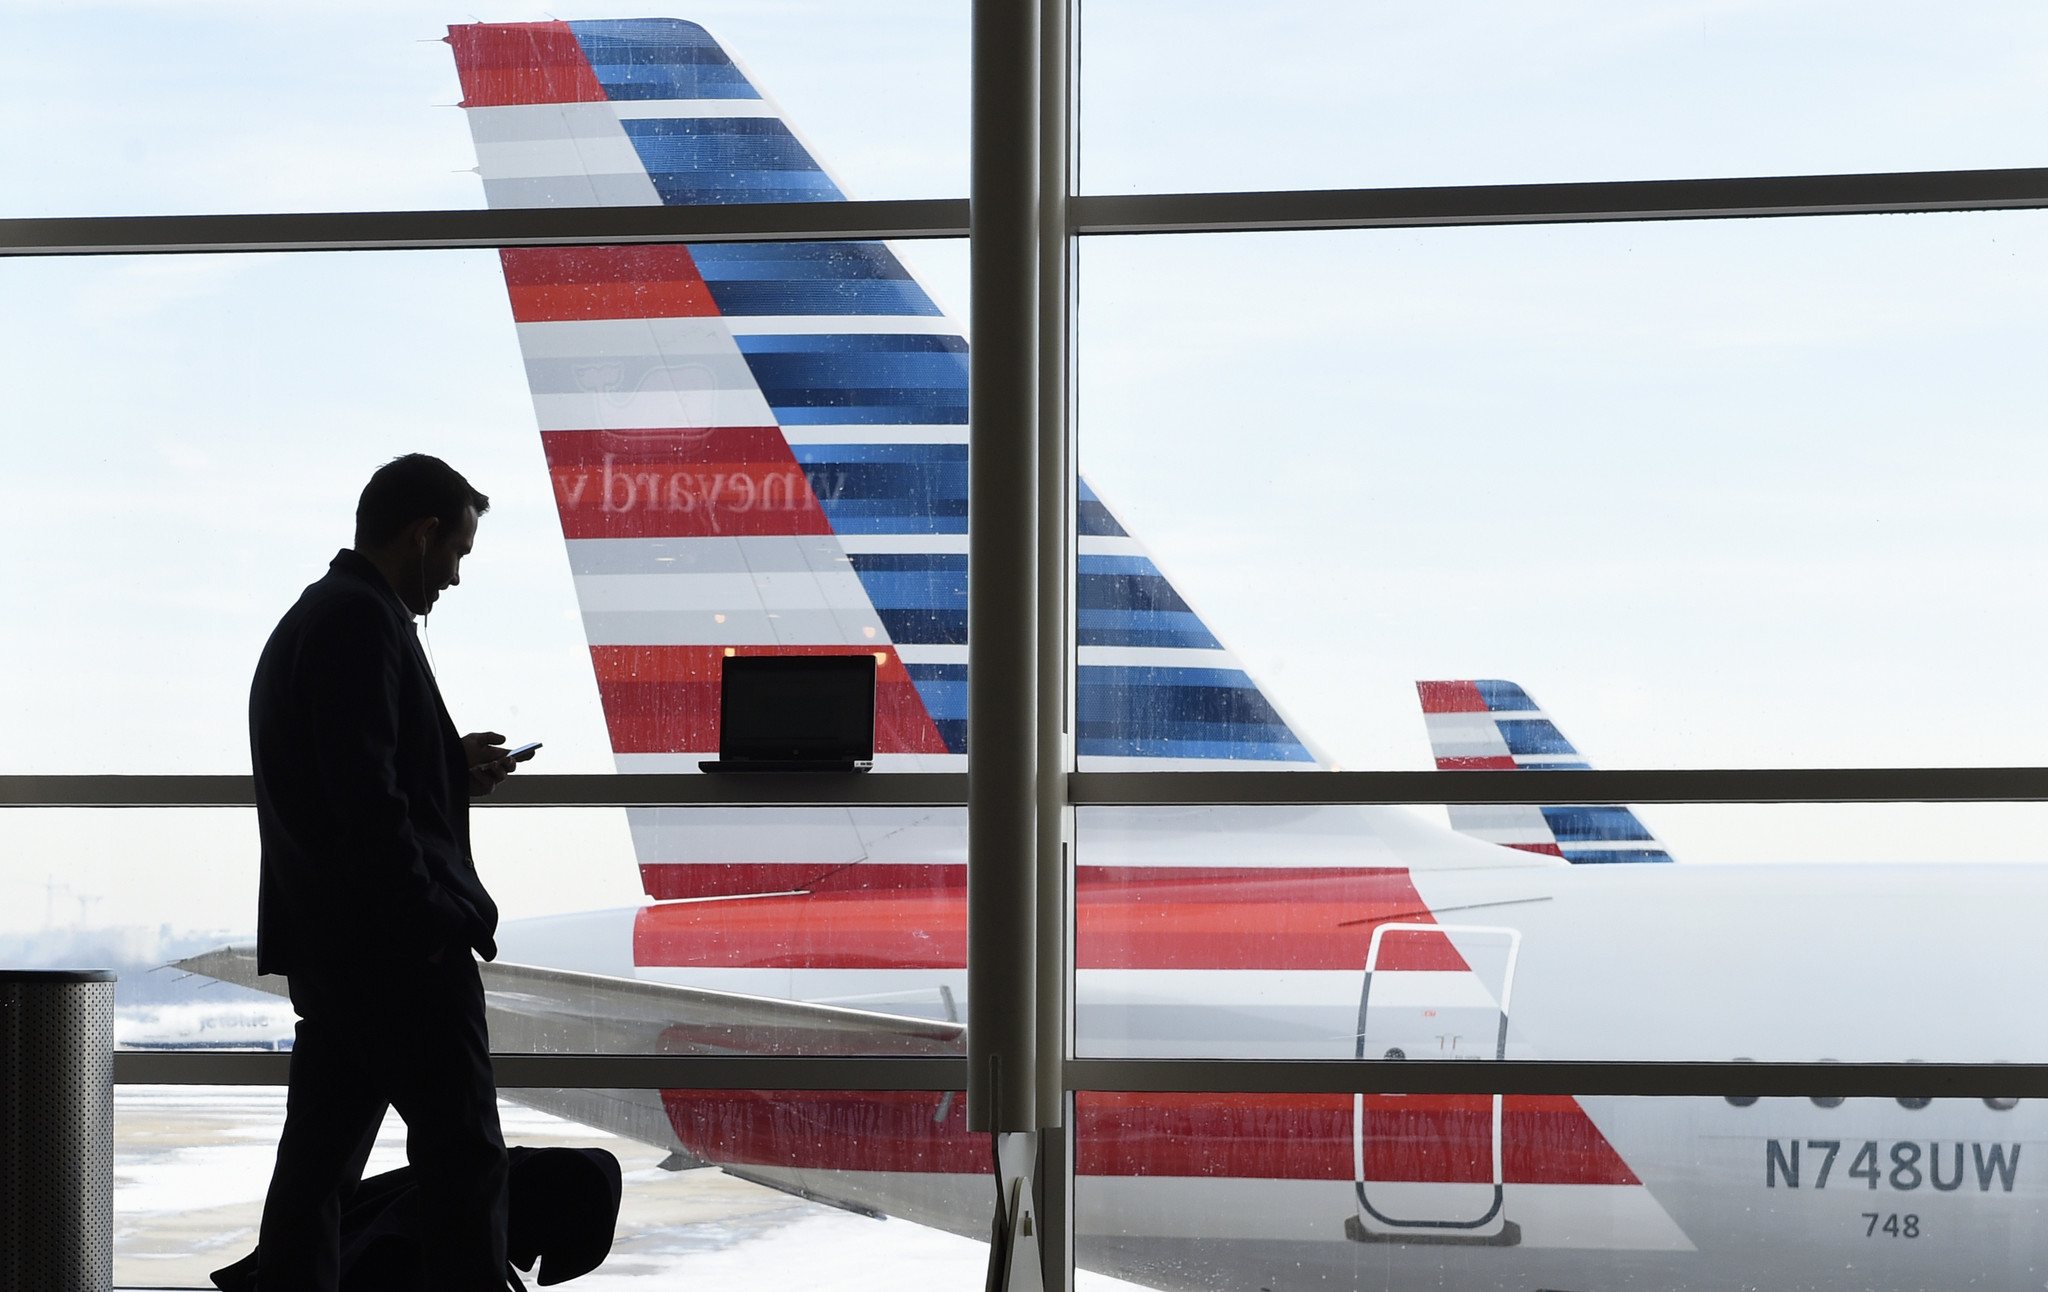 Accidental Travelocity double booking leads to fee